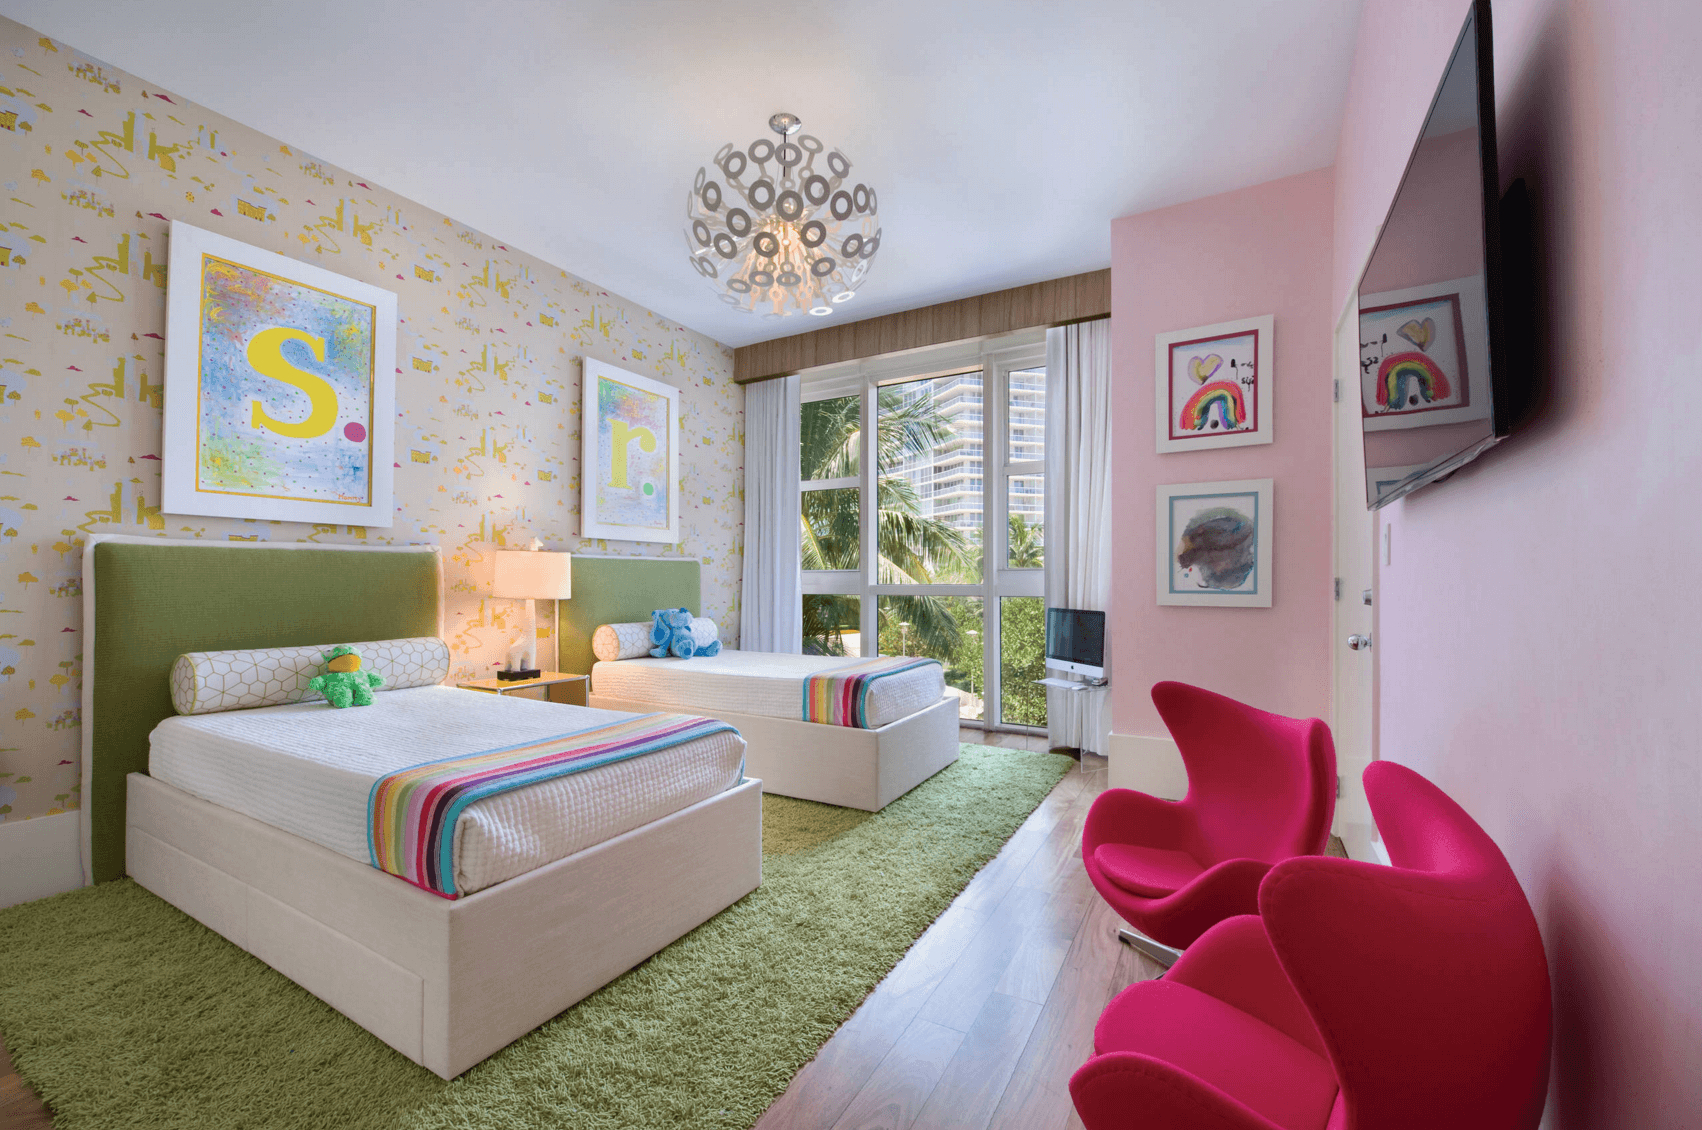 kids small bedroom ideas for girls small bedroom design for girl small shared bedroom ideas best